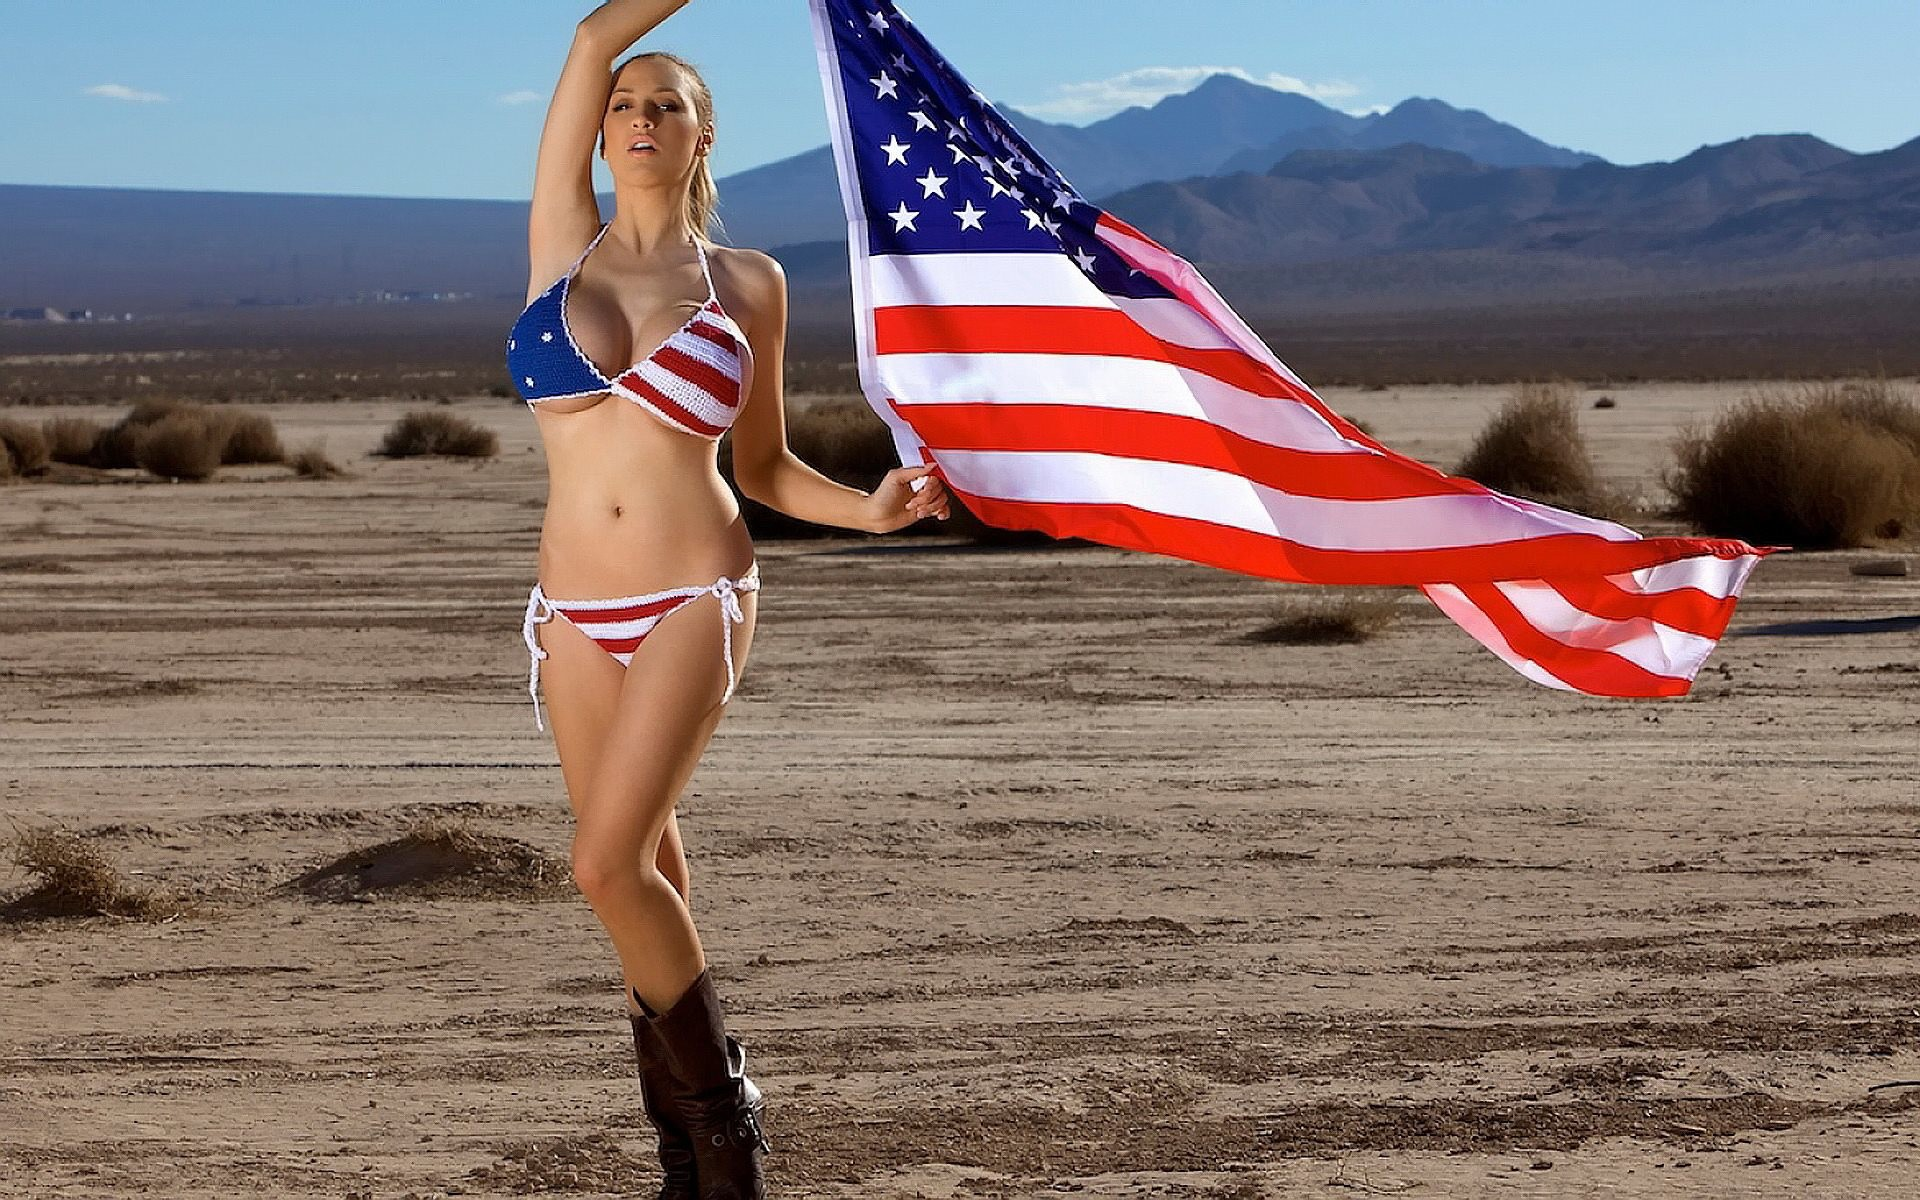 American Flag Wallpapers, HDQ Beautiful American Flag Images & Wallpapers  (Roland Nickerson, 27